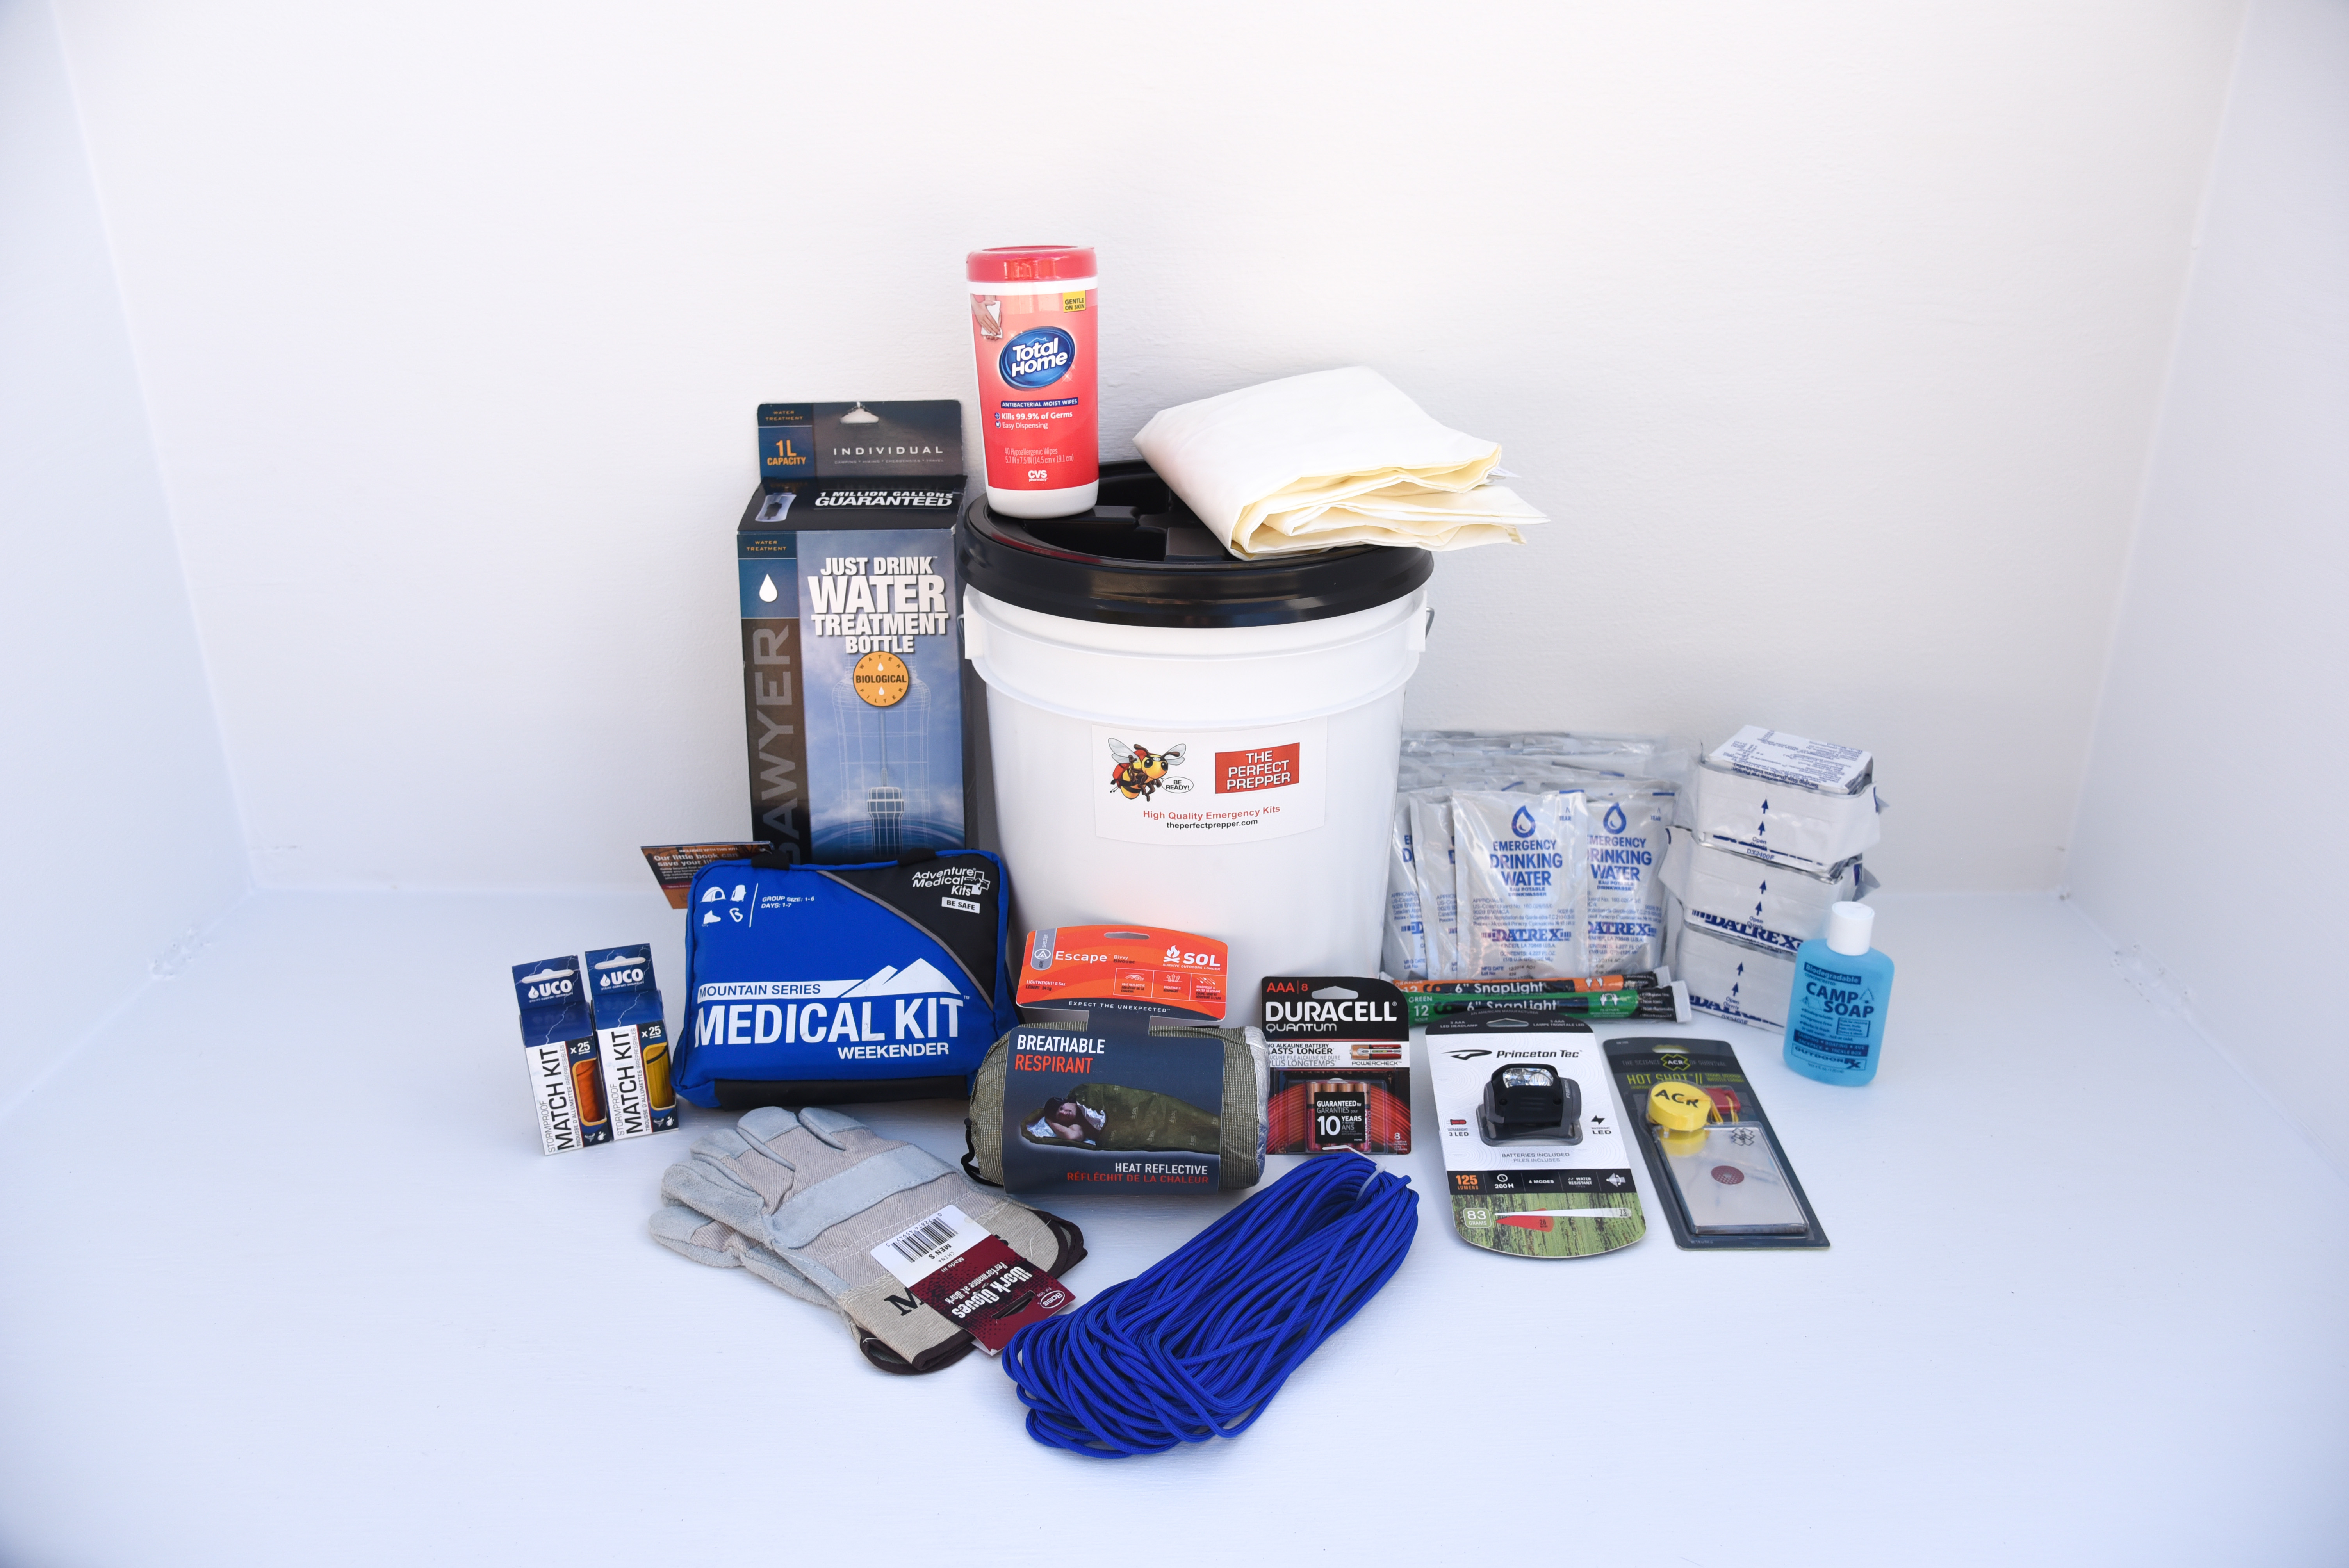 Medical kit   Tips For Sheltering In Place